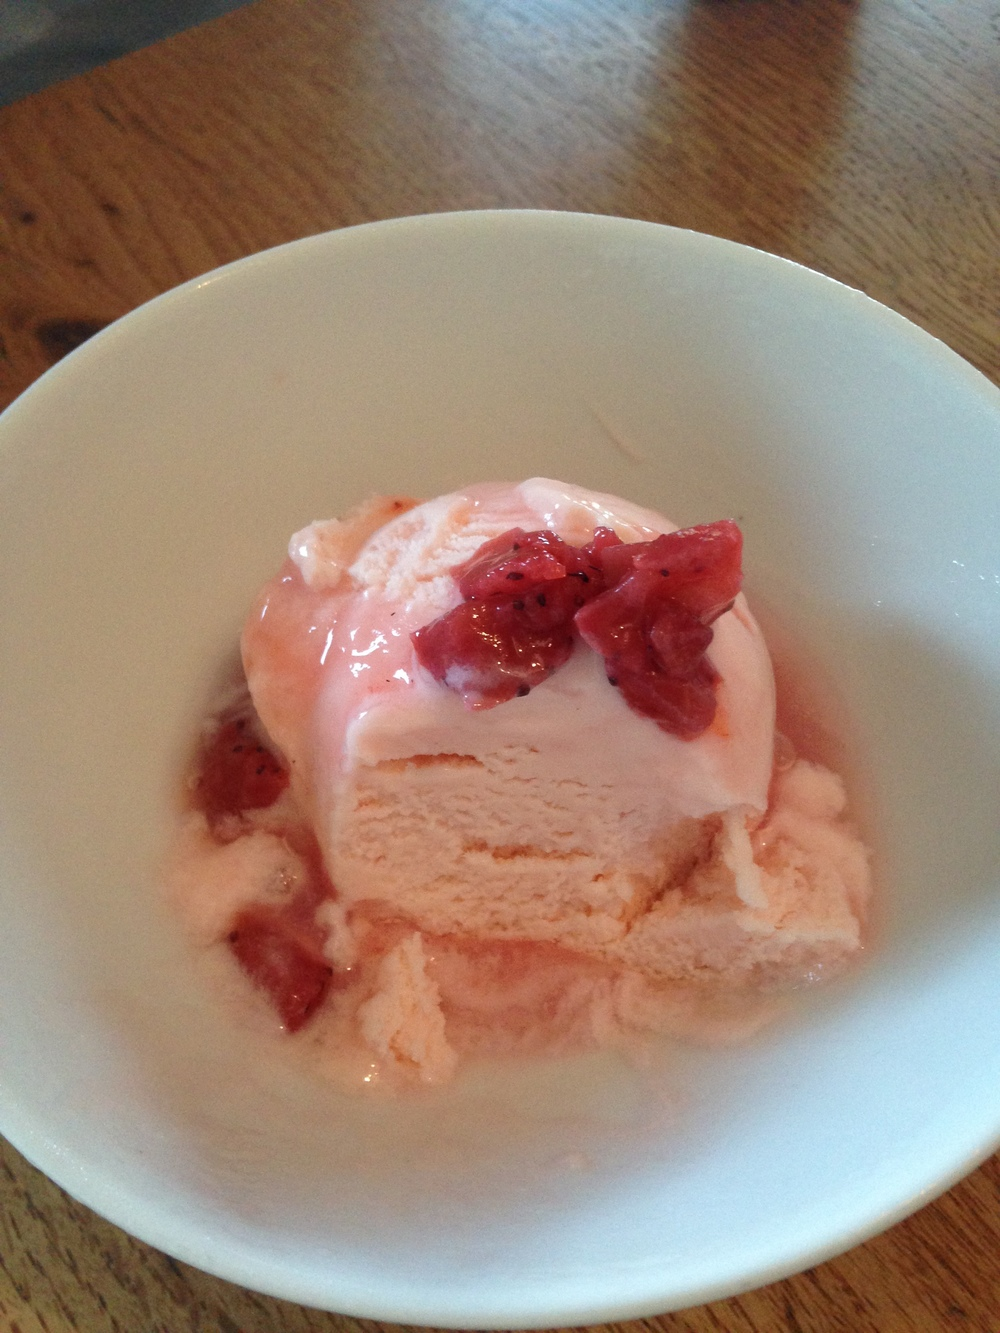 Worst photo yet -- this is rose petal ice cream with pickled strawberries and rhubarb. It tastes 10000000x better than it looks right here.